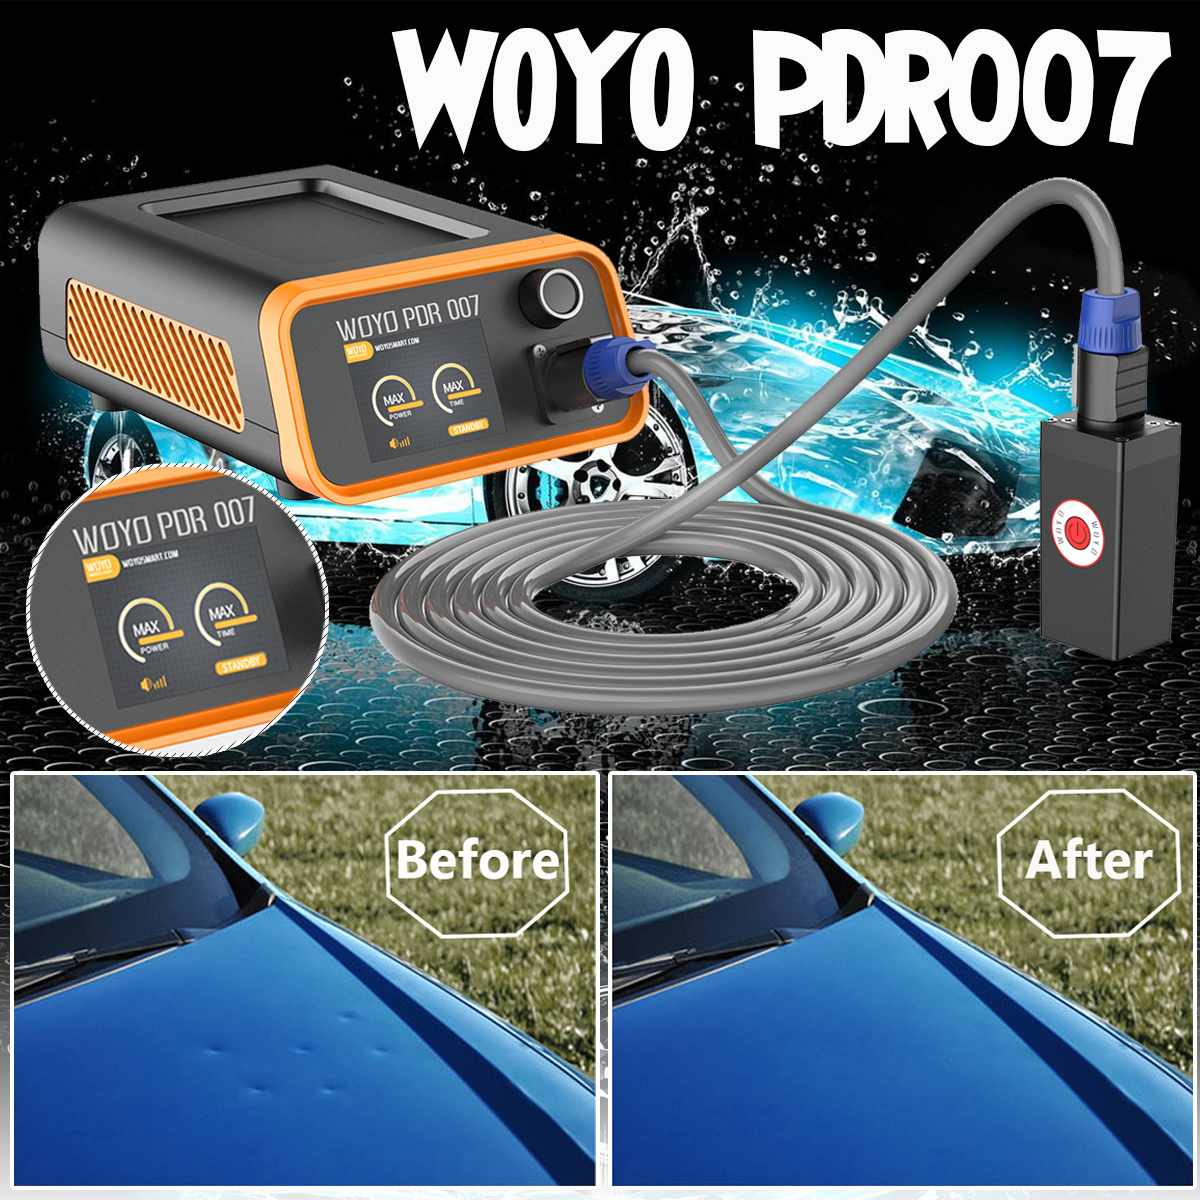 WOYO PDR-007 Car Dent Repair Remover Tool HotBox Induction Heaters 220V/110V 1000W Paintless Car Body Dents Removing Repair Tool